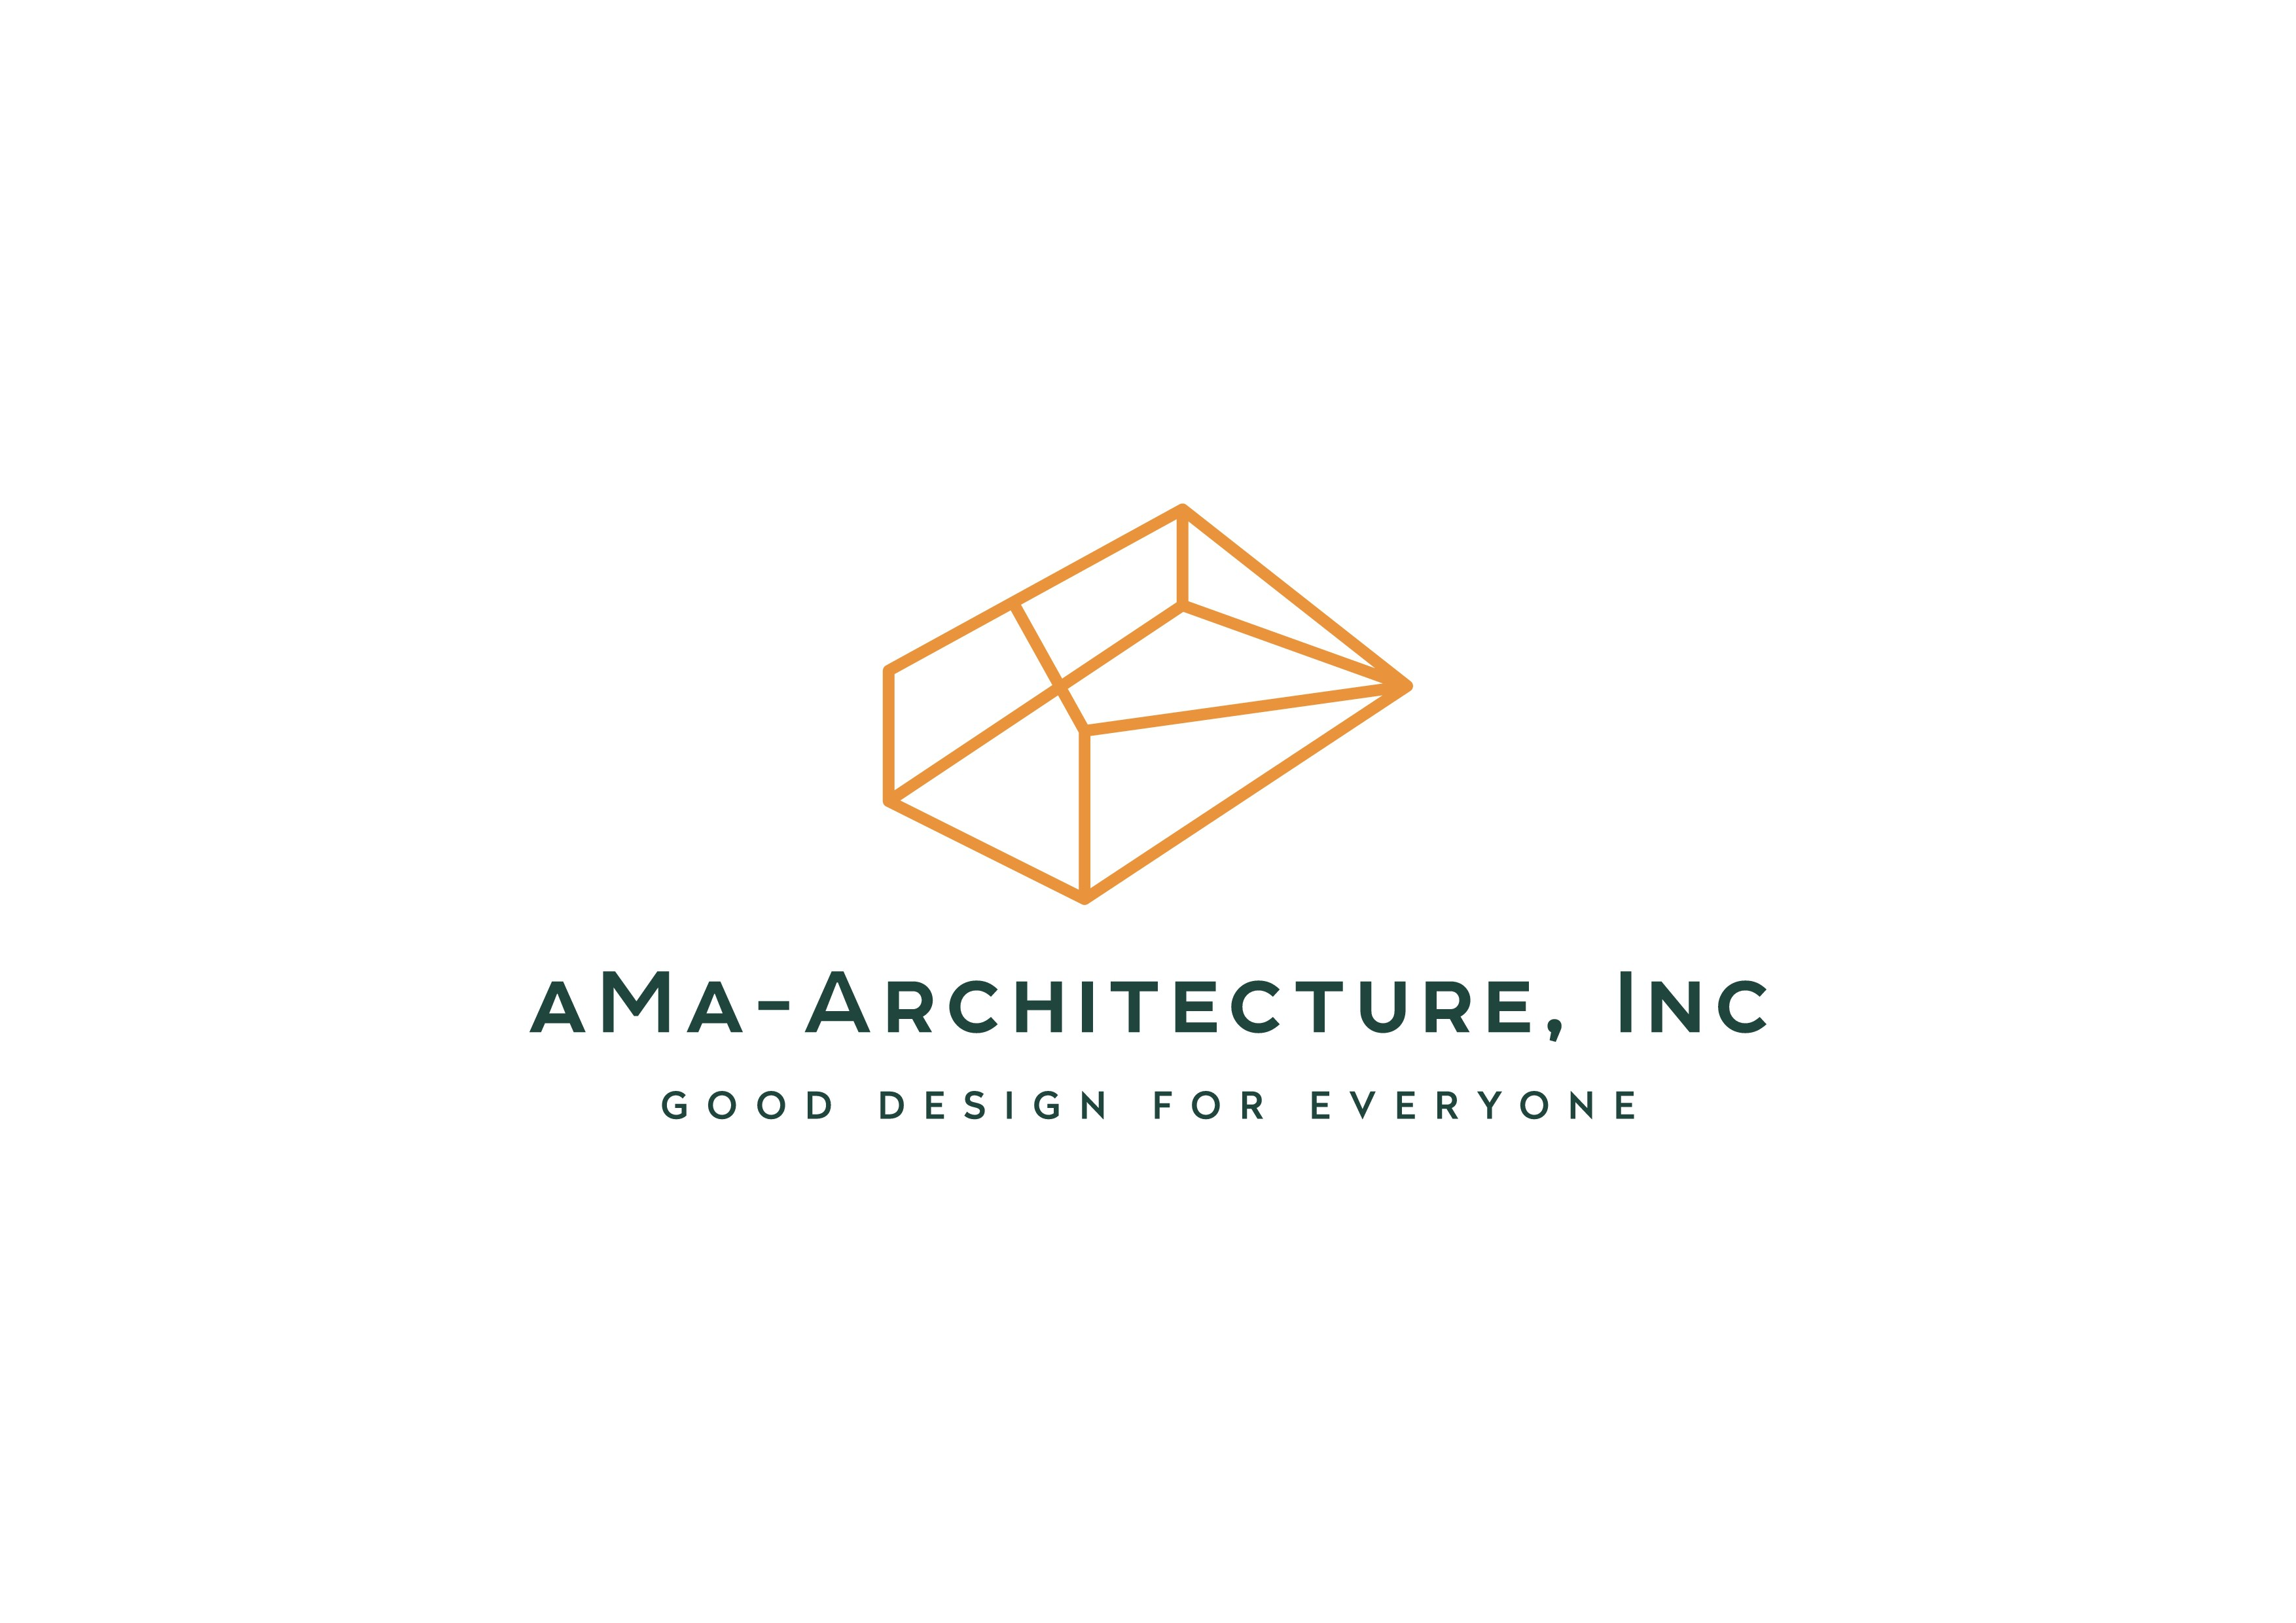 Modern, warm, friendly, clean logo needed for residential architect